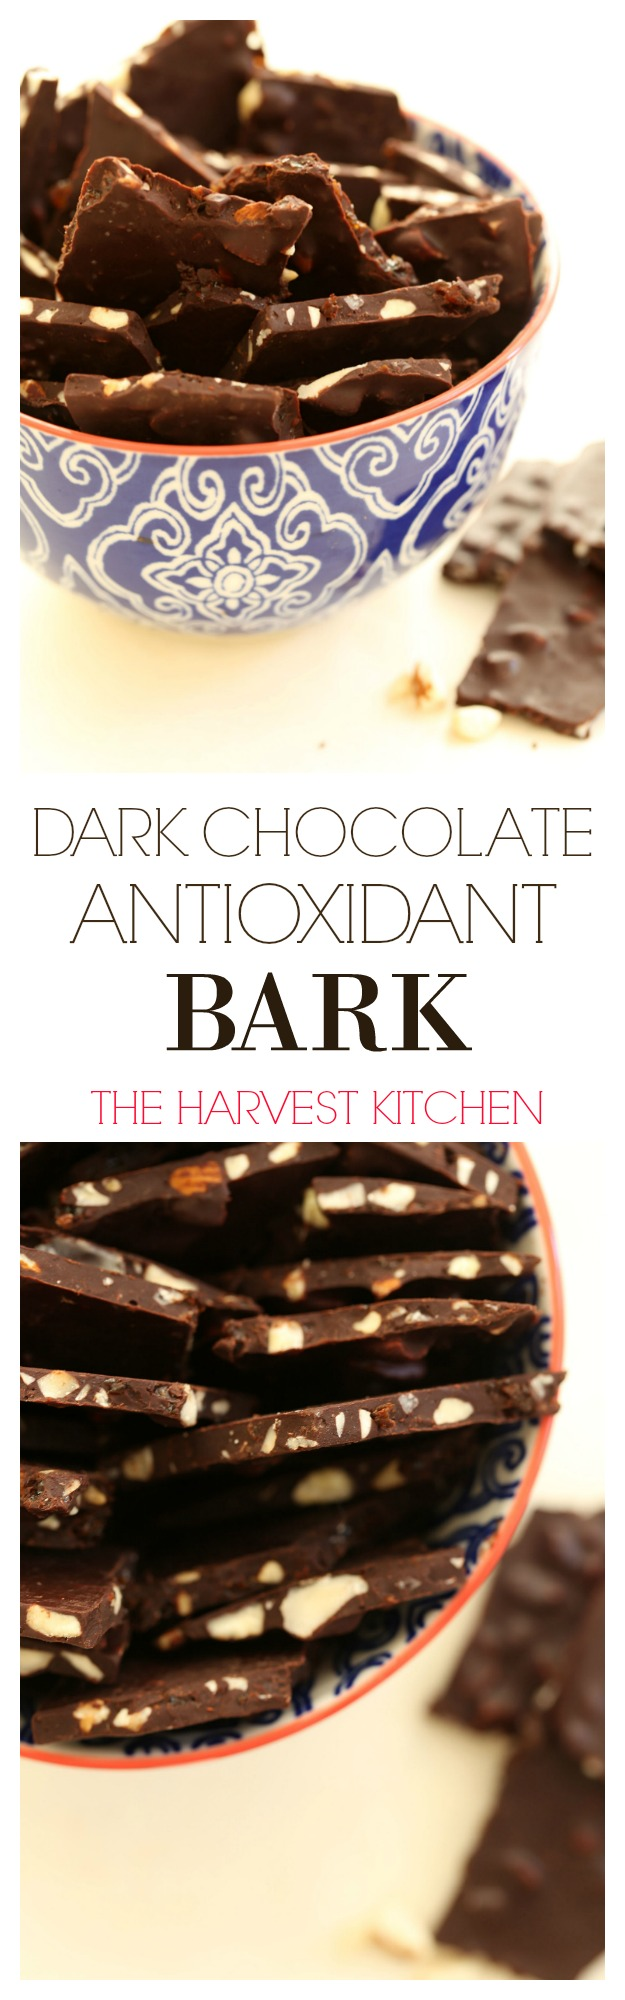 dark-chocolate-antioxidant-bark